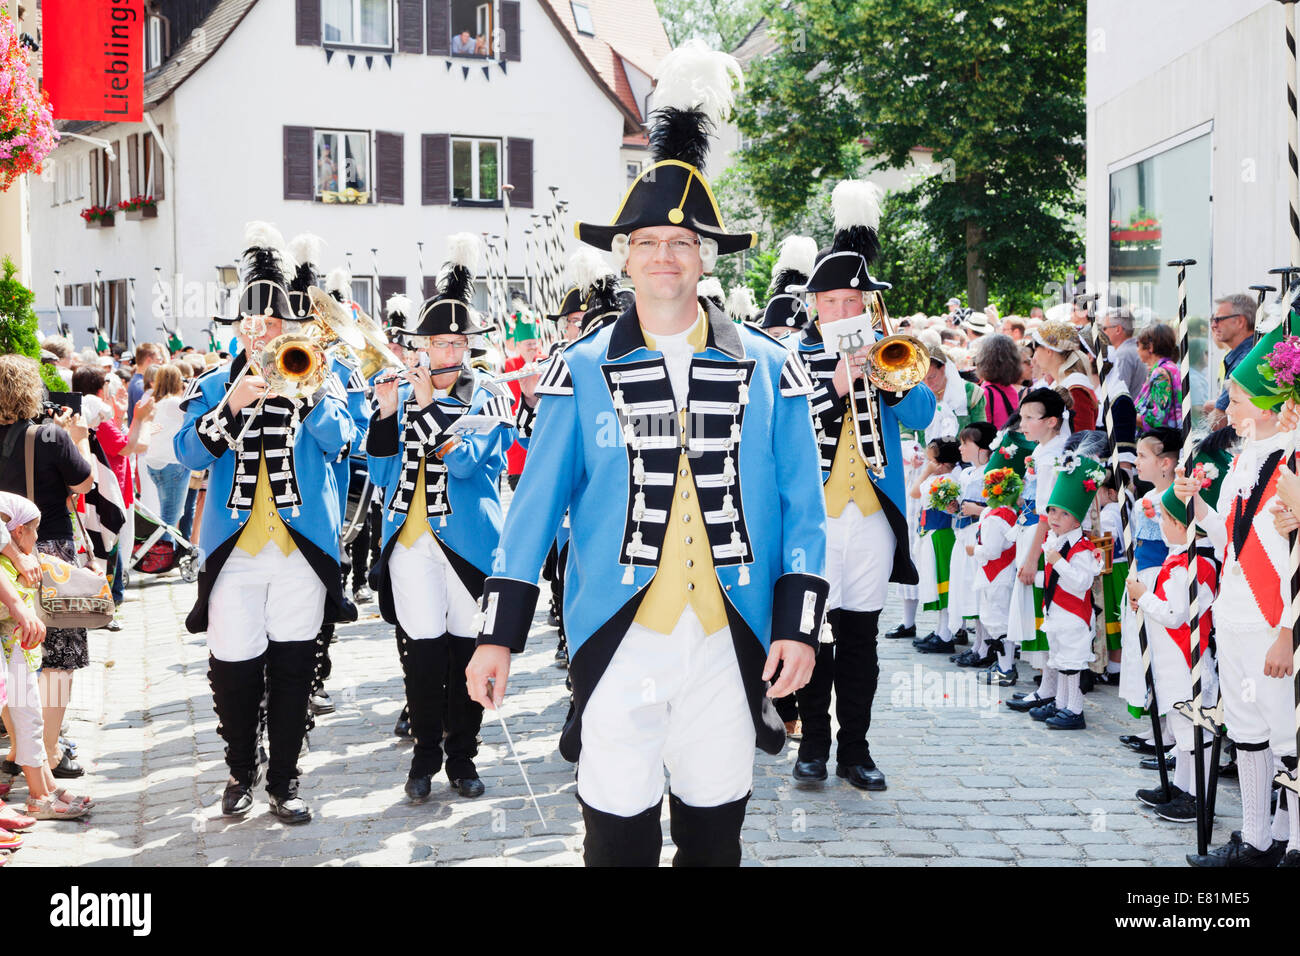 Musicians of the Ulm town soldiers, Fischerstechen or water jousting festival, Ulm, Baden-Württemberg, Germany - Stock Image